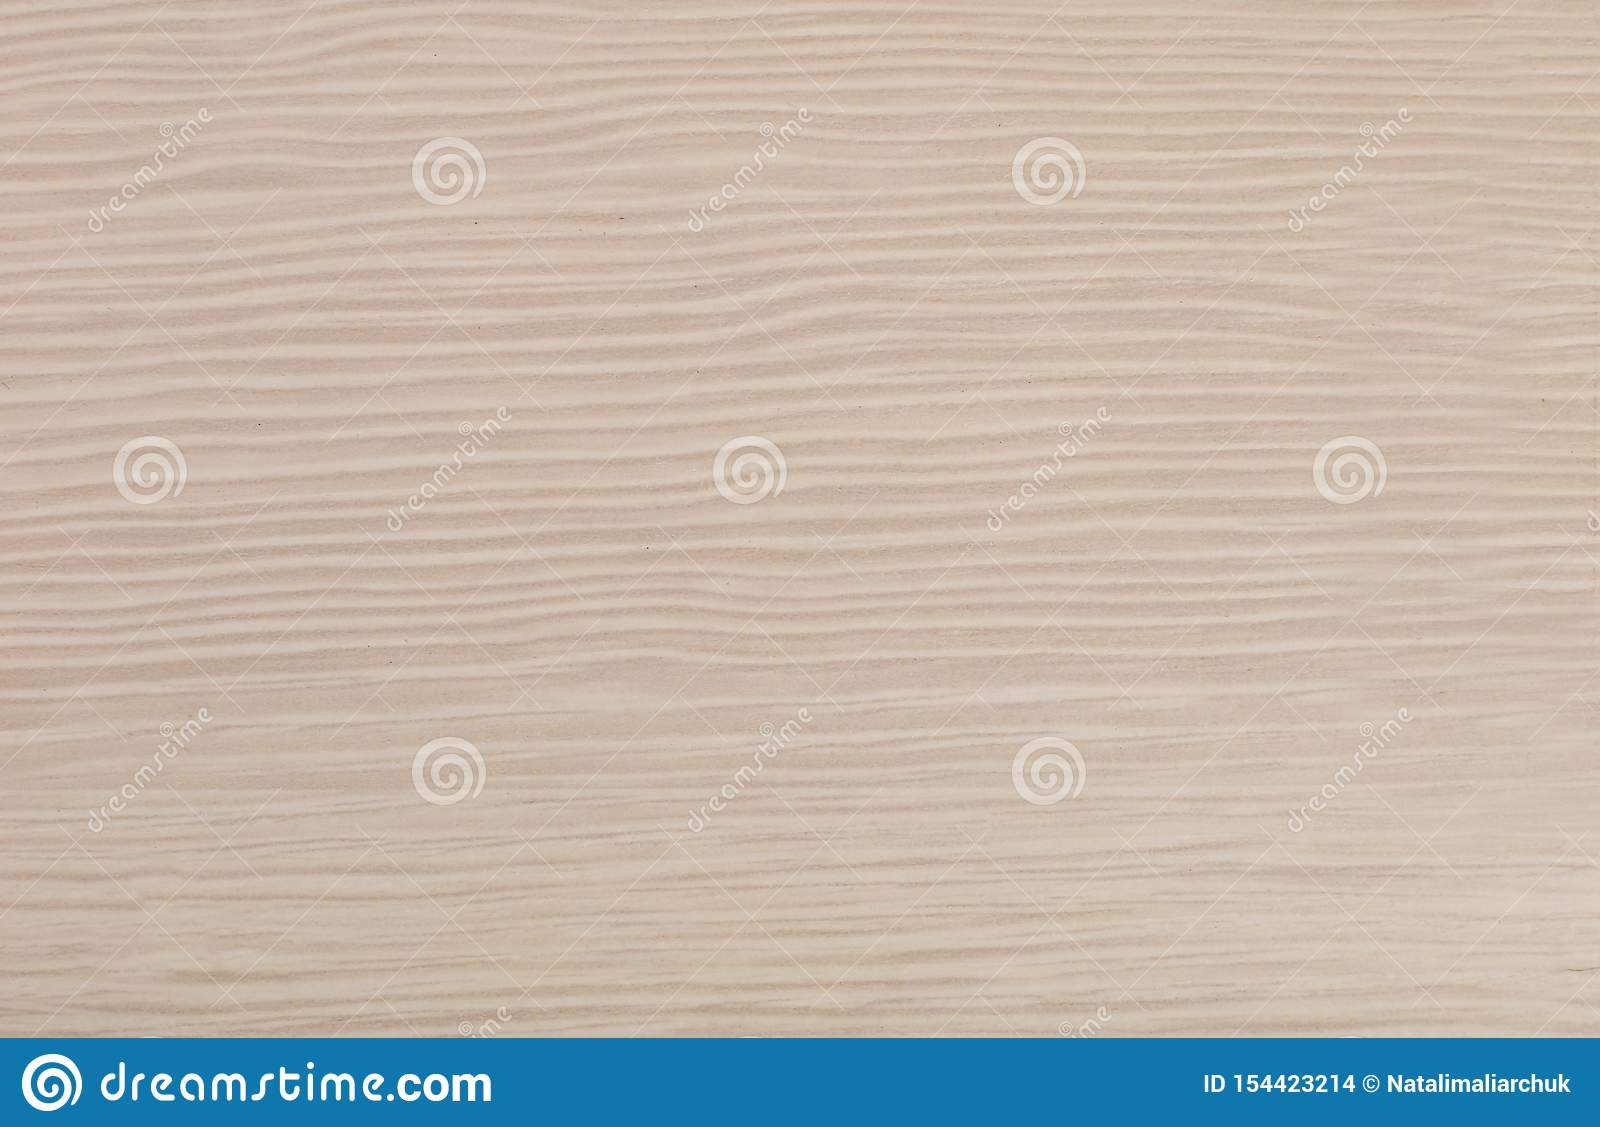 Ivory Wood texture and background